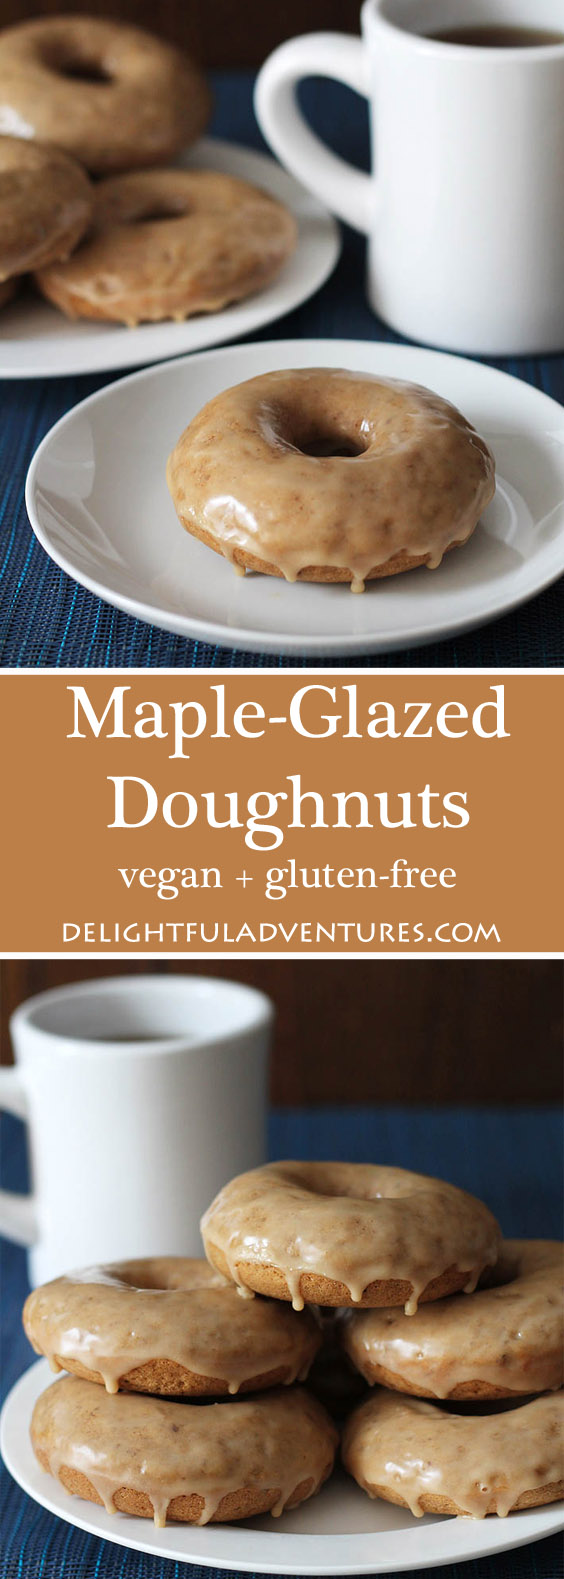 Maple doughnuts that can be made vegan or vegan and gluten-free! The spices and the maple-glaze make these baked doughnuts extra special and perfect to serve as a special treat. #vegandoughnuts #glutenfreedoughnuts #vegandonuts #veganglutenfree